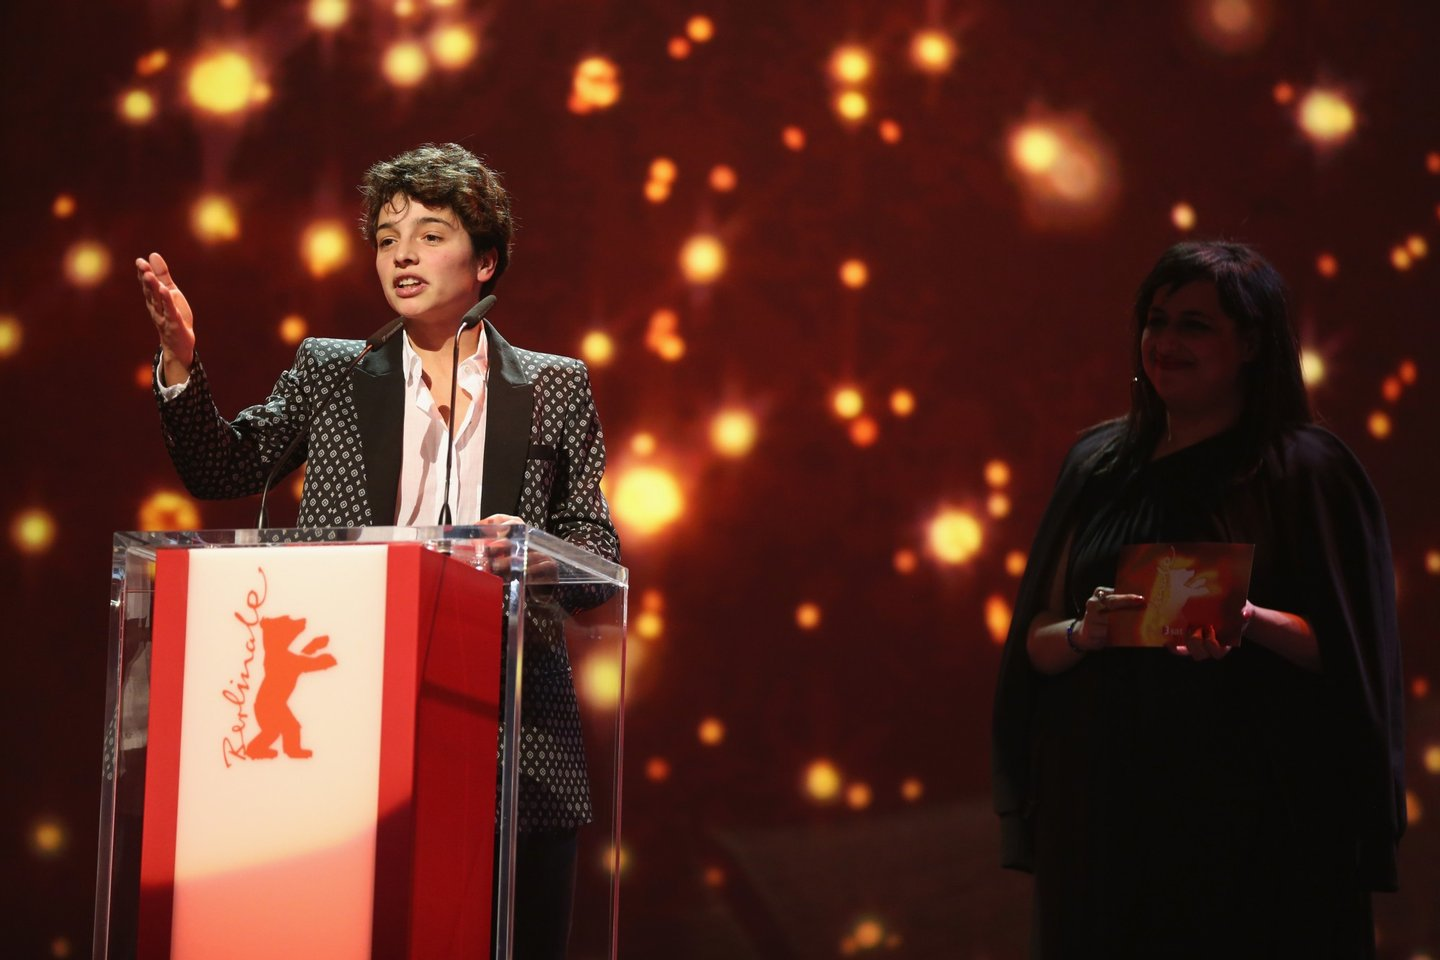 BERLIN, GERMANY - FEBRUARY 20: Director Leonor Teles winner of the Golden Bear for Best Short Film for 'Balada de um Batráquio' speaks on stage during the closing ceremony of the 66th Berlinale International Film Festival on February 20, 2016 in Berlin, Germany. (Photo by Sean Gallup/Getty Images)